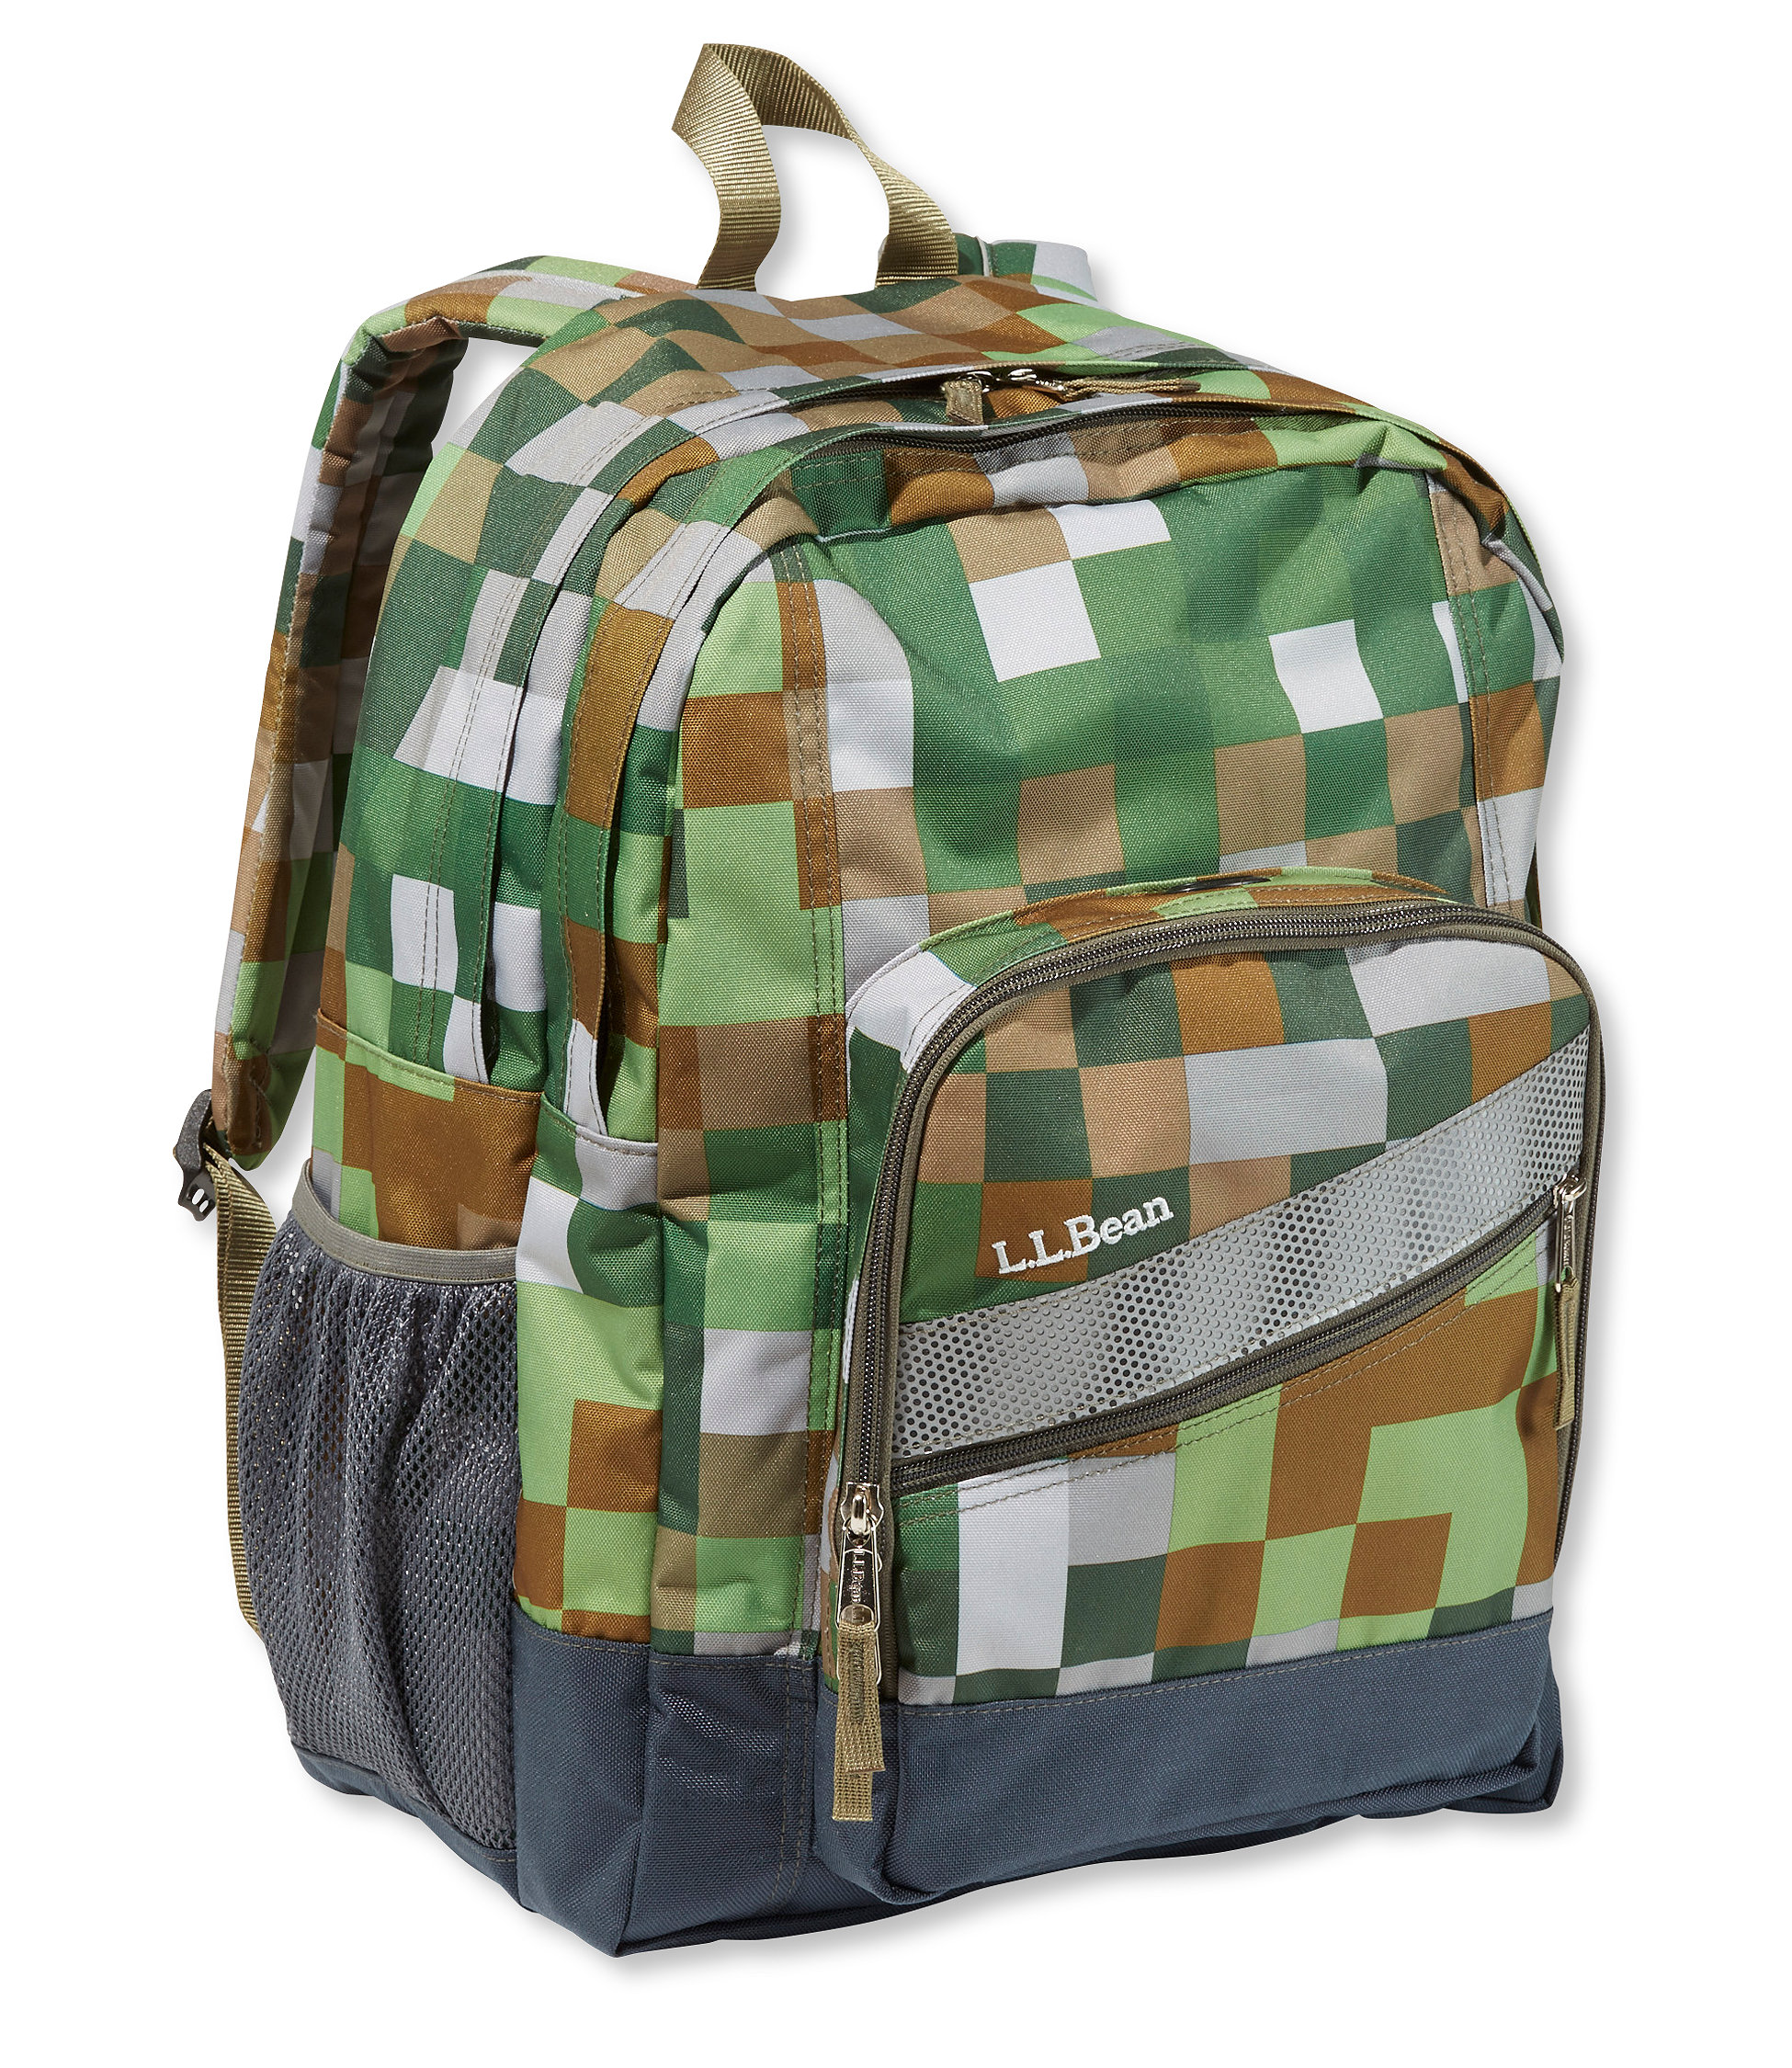 L.L.Bean Deluxe Plus Kids Backpack